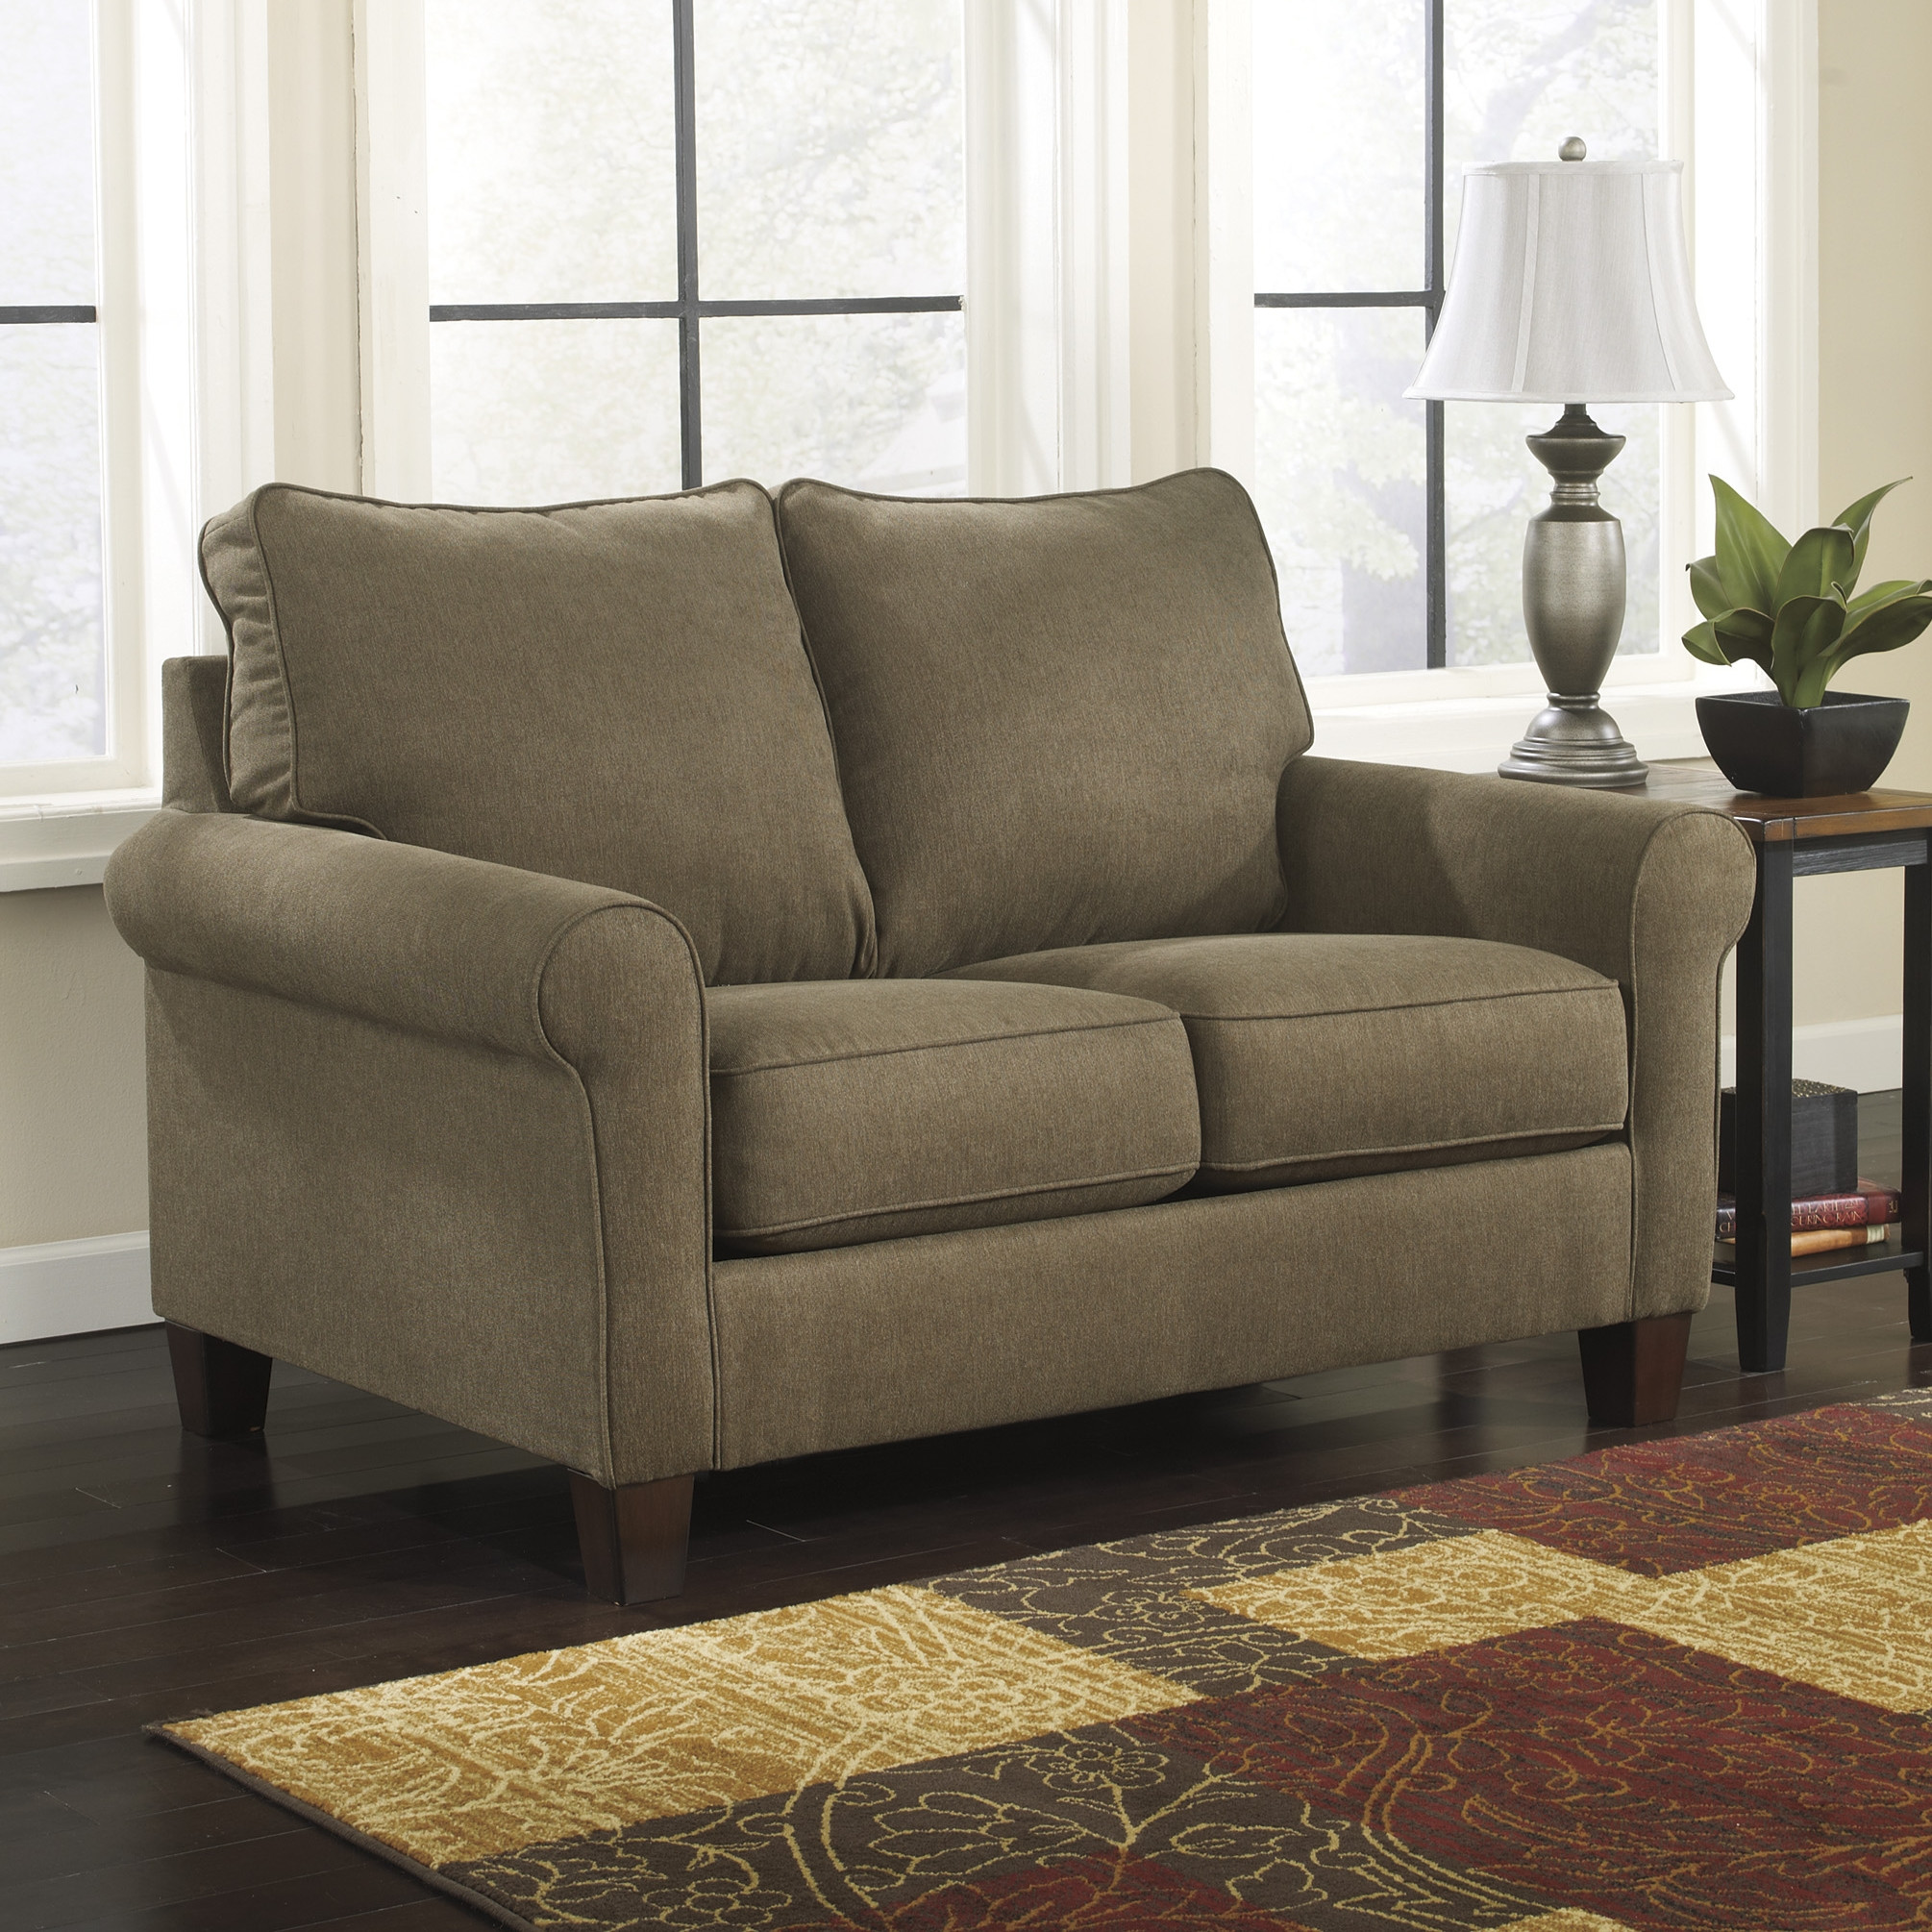 Armless Loveseat Sleeper | Loveseat Sleeper | Sectional Sleeper Sofa